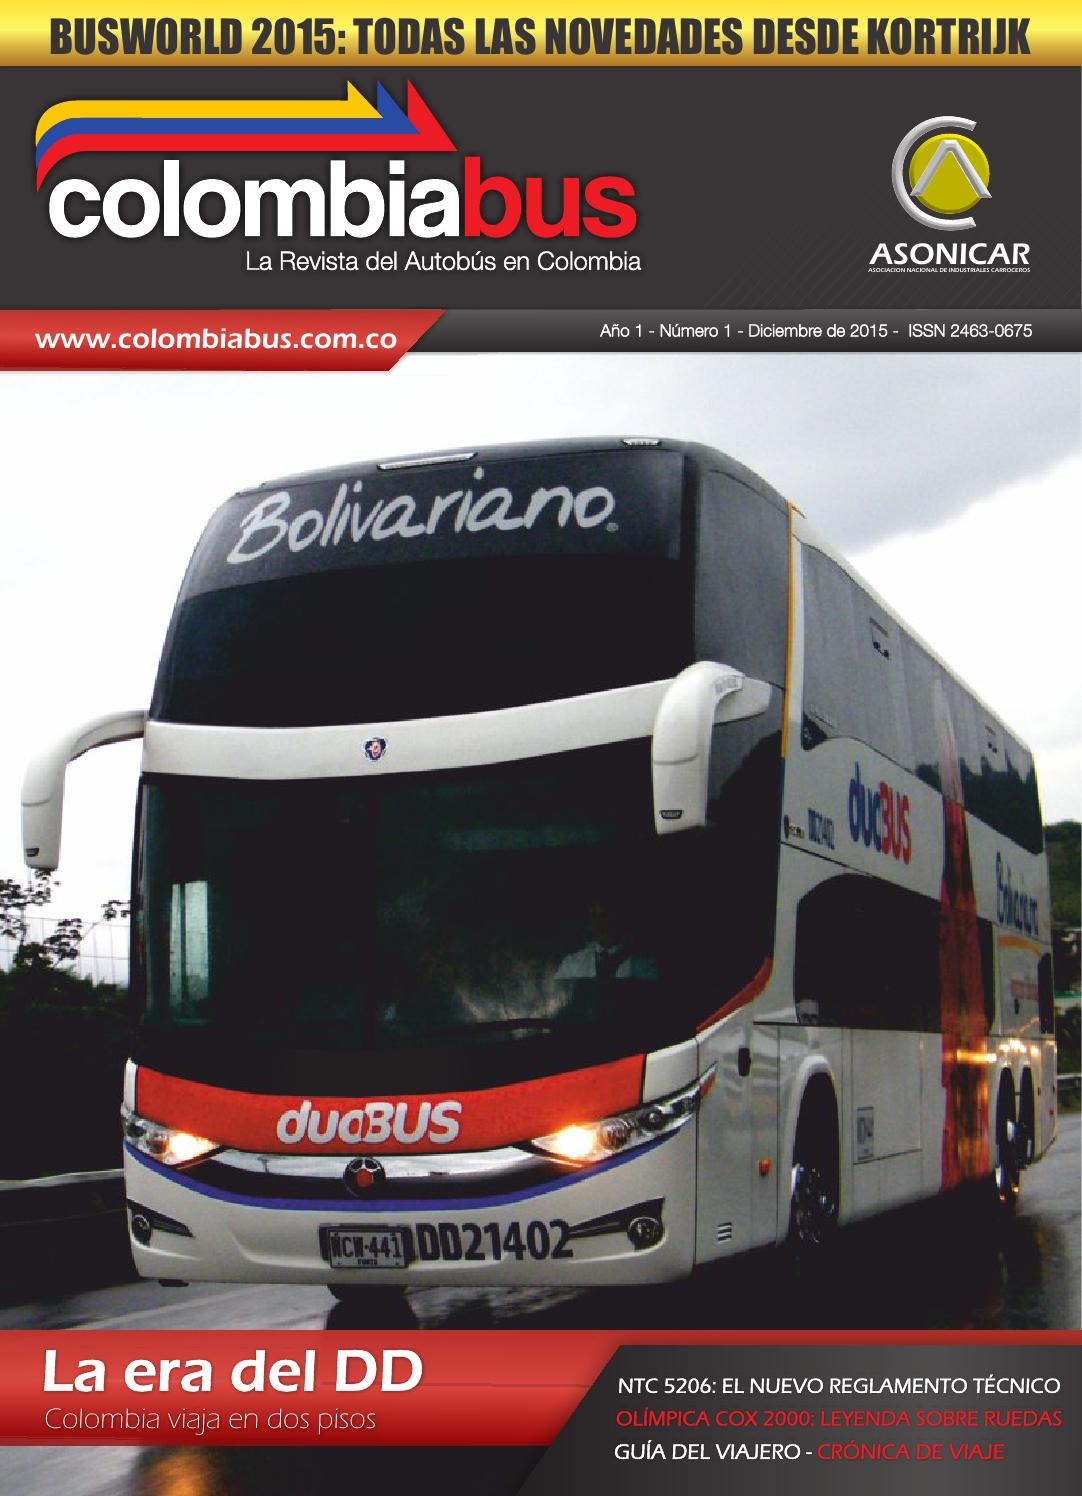 Revista Colombiabus diciembre 2015 - Ed. 1 by Colombiabus - issuu